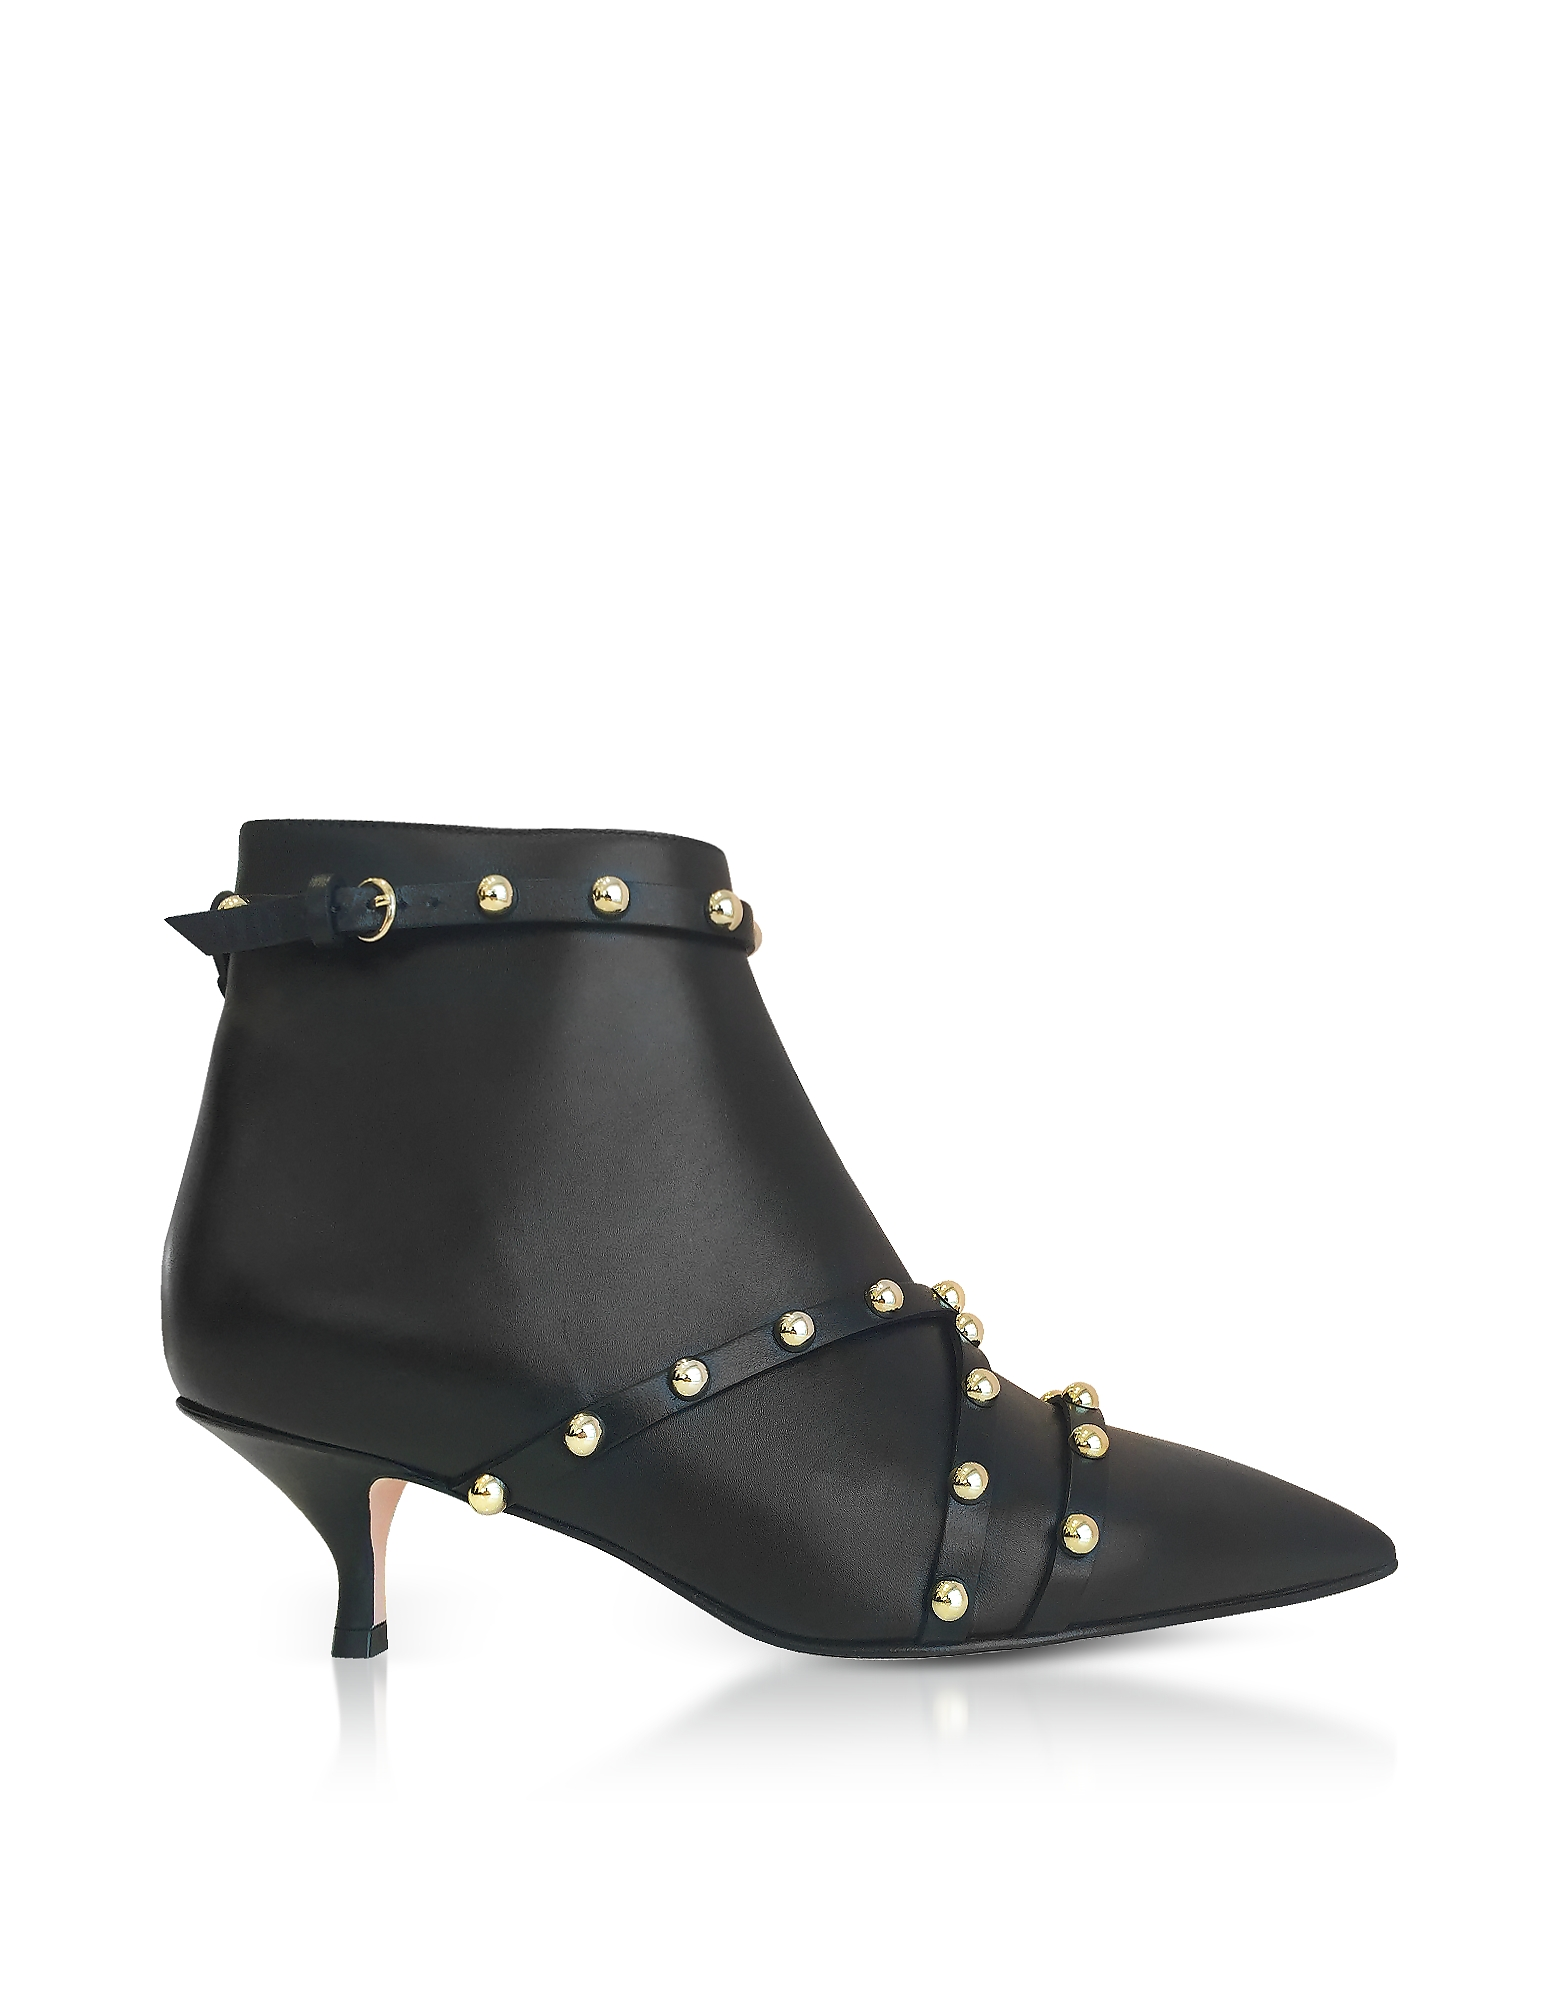 Image of RED Valentino Designer Shoes, Black Leather Ankle Boots